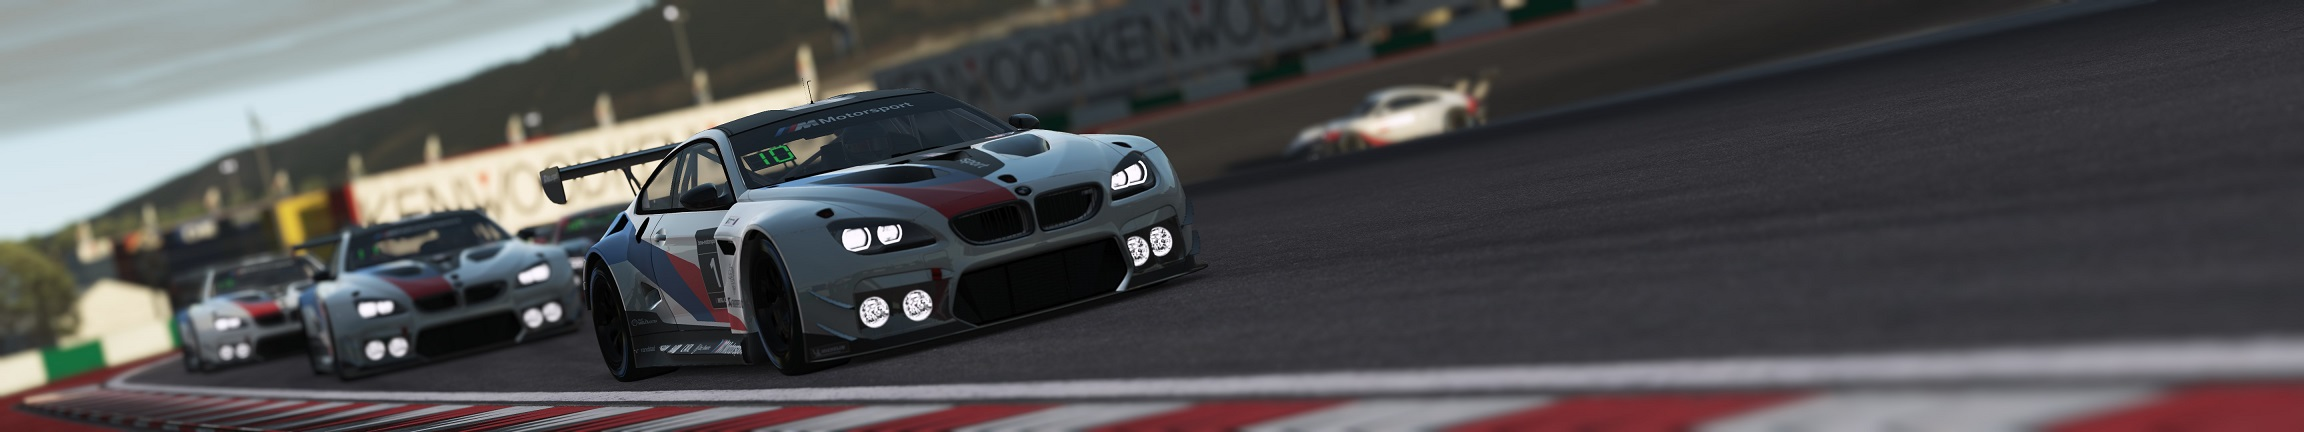 4 rF2 GT3 CHALLENGERS at PORTIMAO bmw front copy.jpg